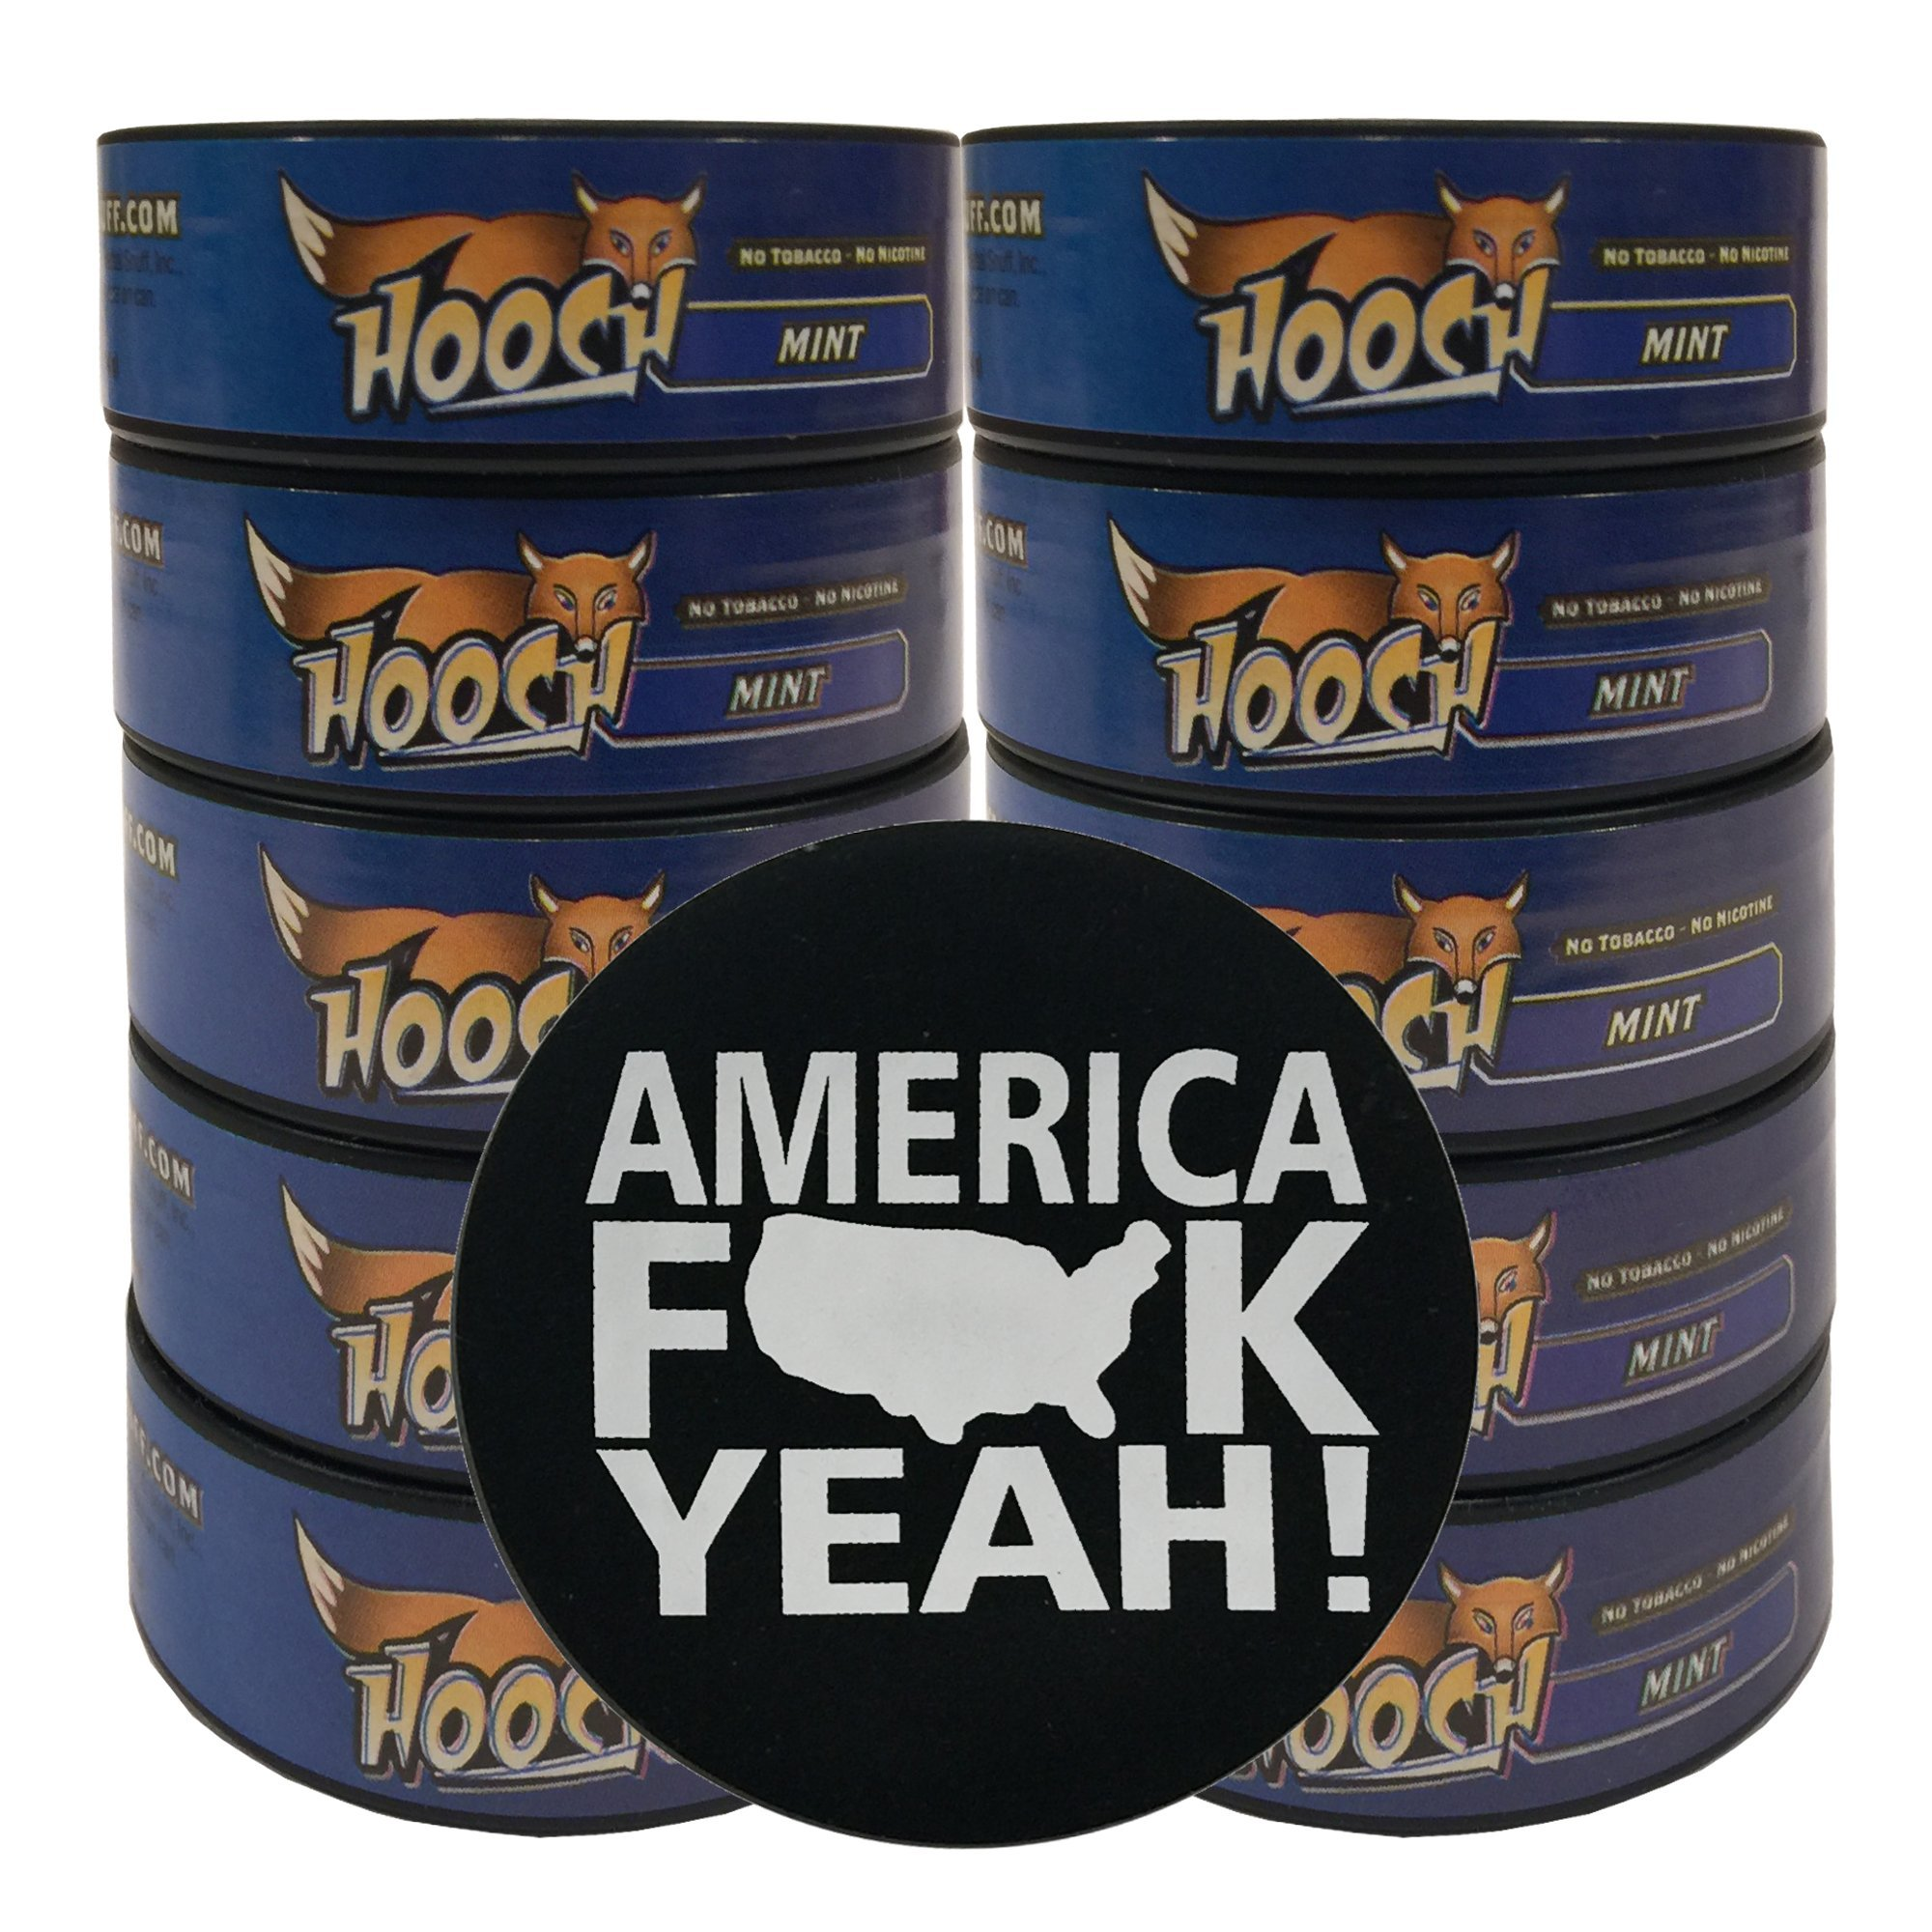 Hooch Herbal Snuff Or Chew - 10 Can - Includes DC Skin Can Cover (Mint Fine) (America Skin)